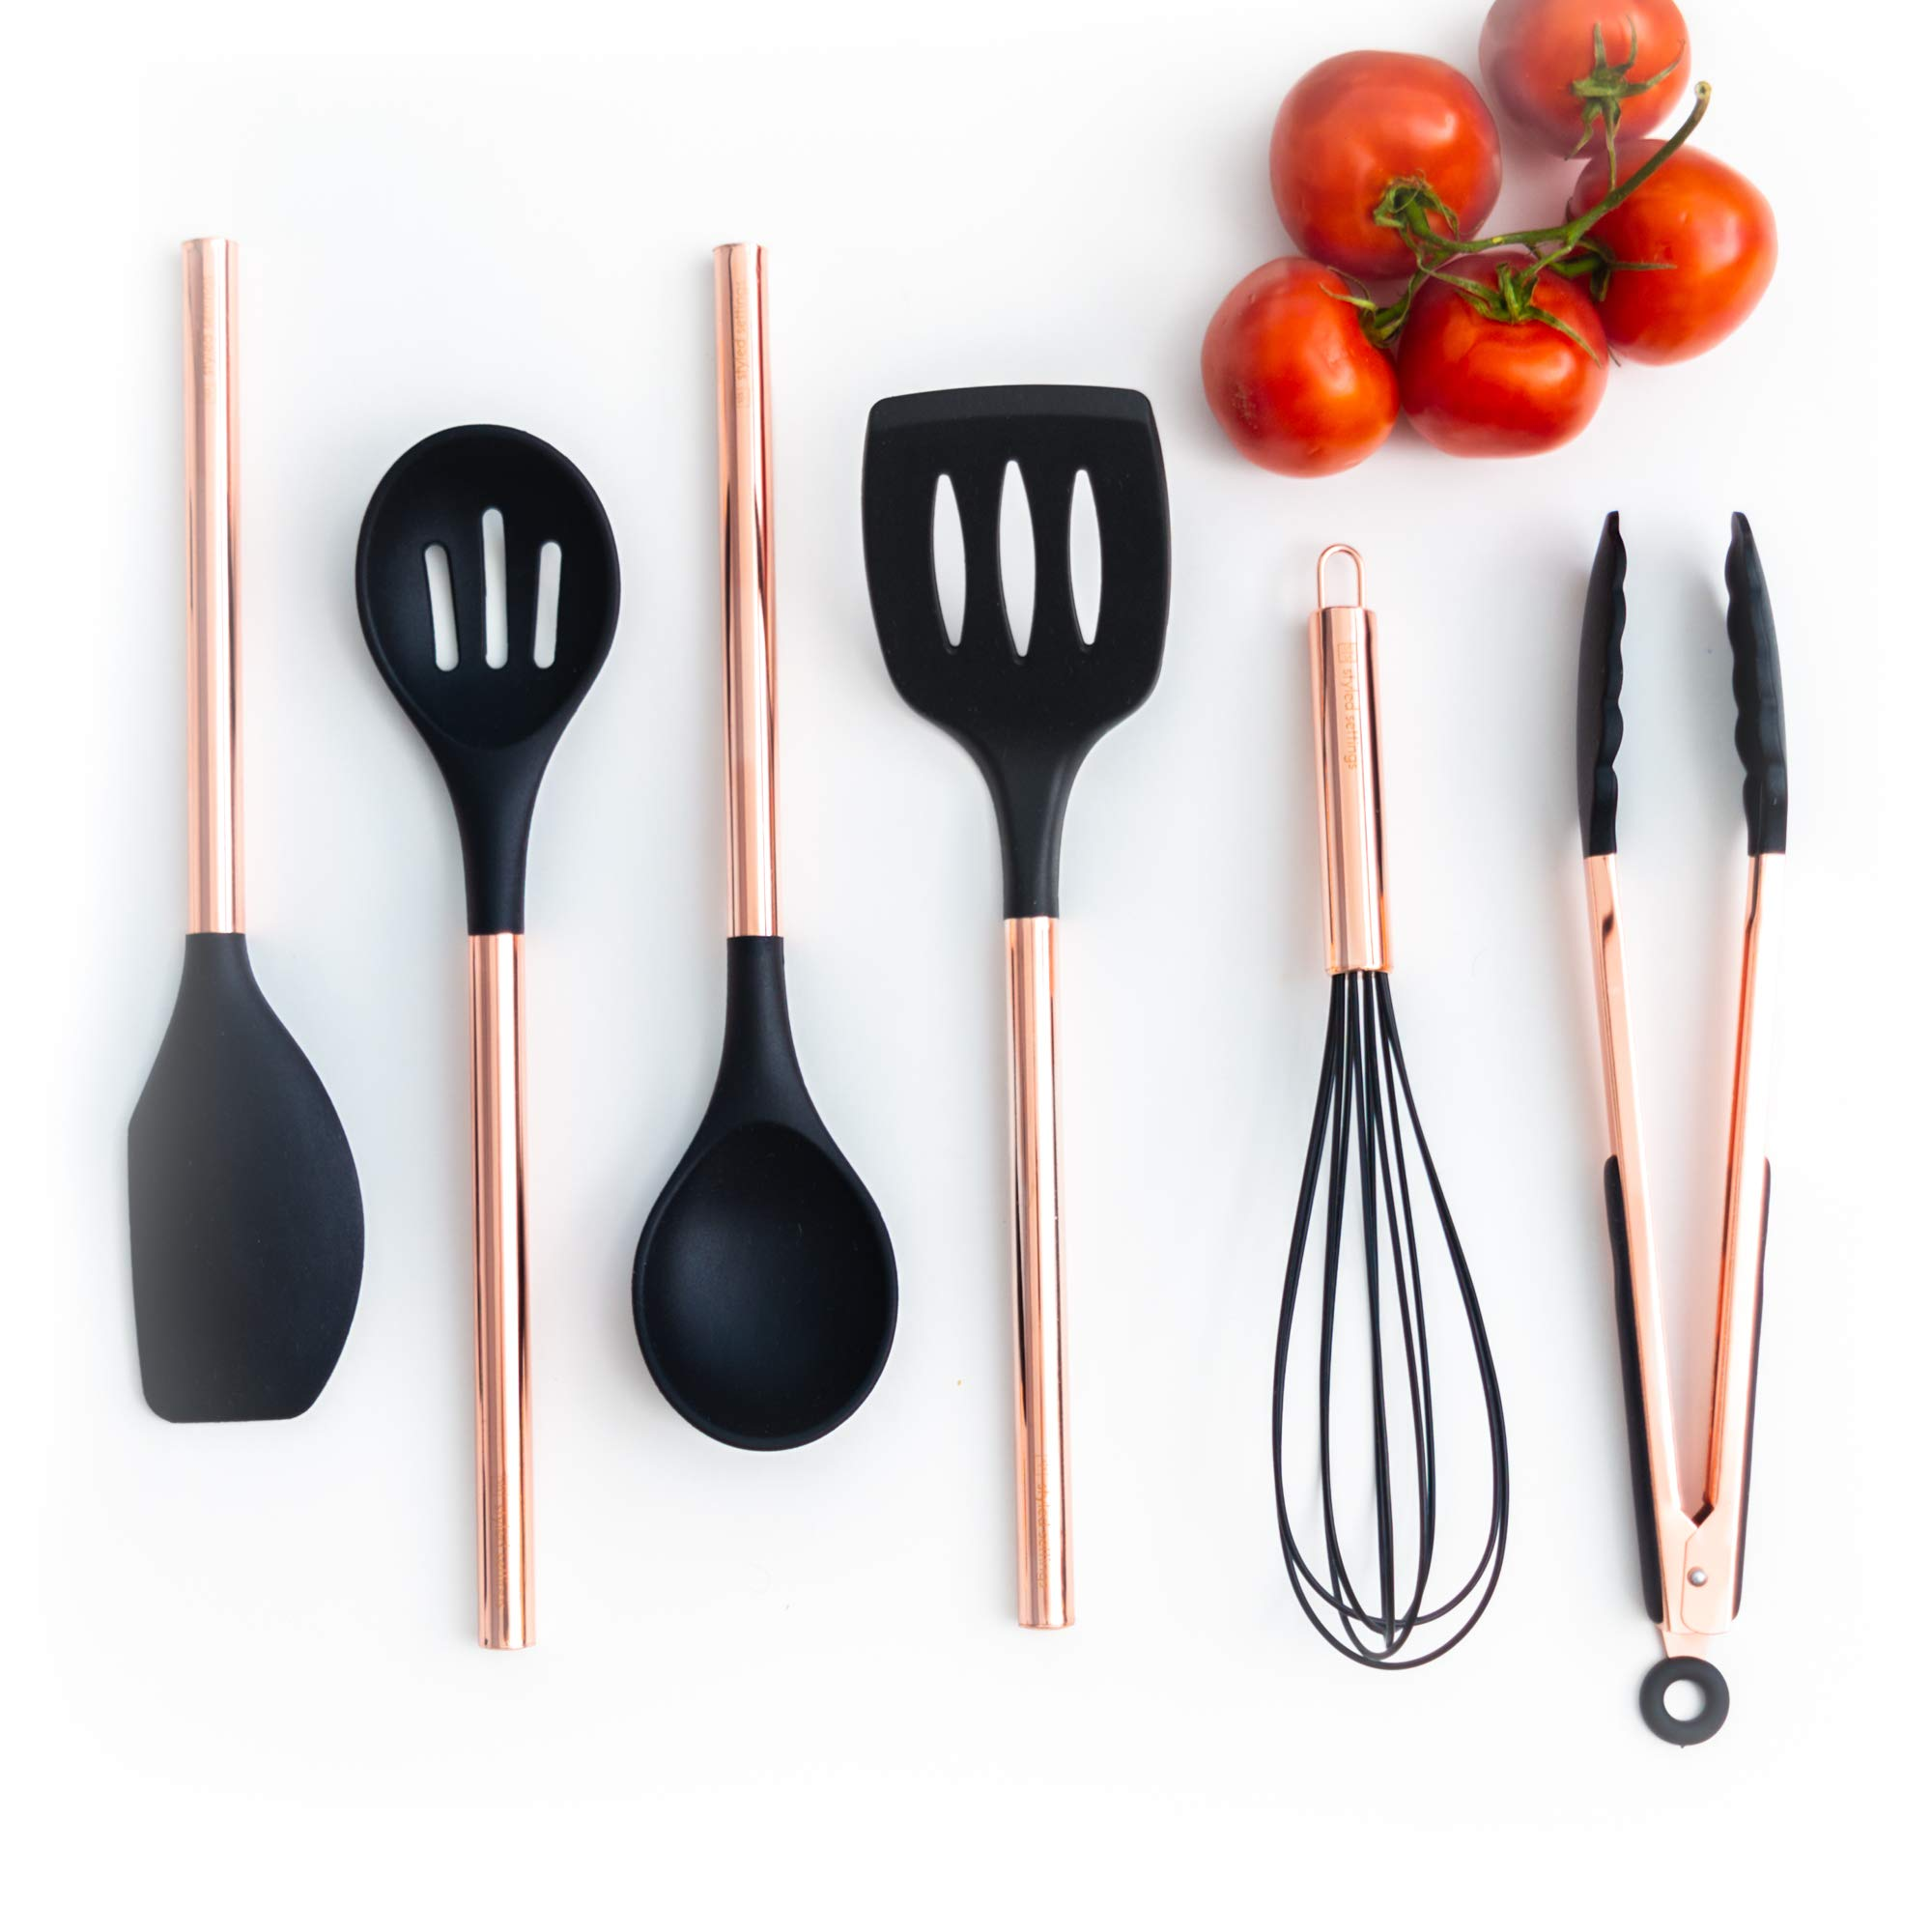 Black Silicone and Copper Cooking Utensils for Modern Cooking and Serving, Stainless Steel Copper Serving Utensils Ideal Spatulas for Non Stick Cookware by STYLED SETTINGS